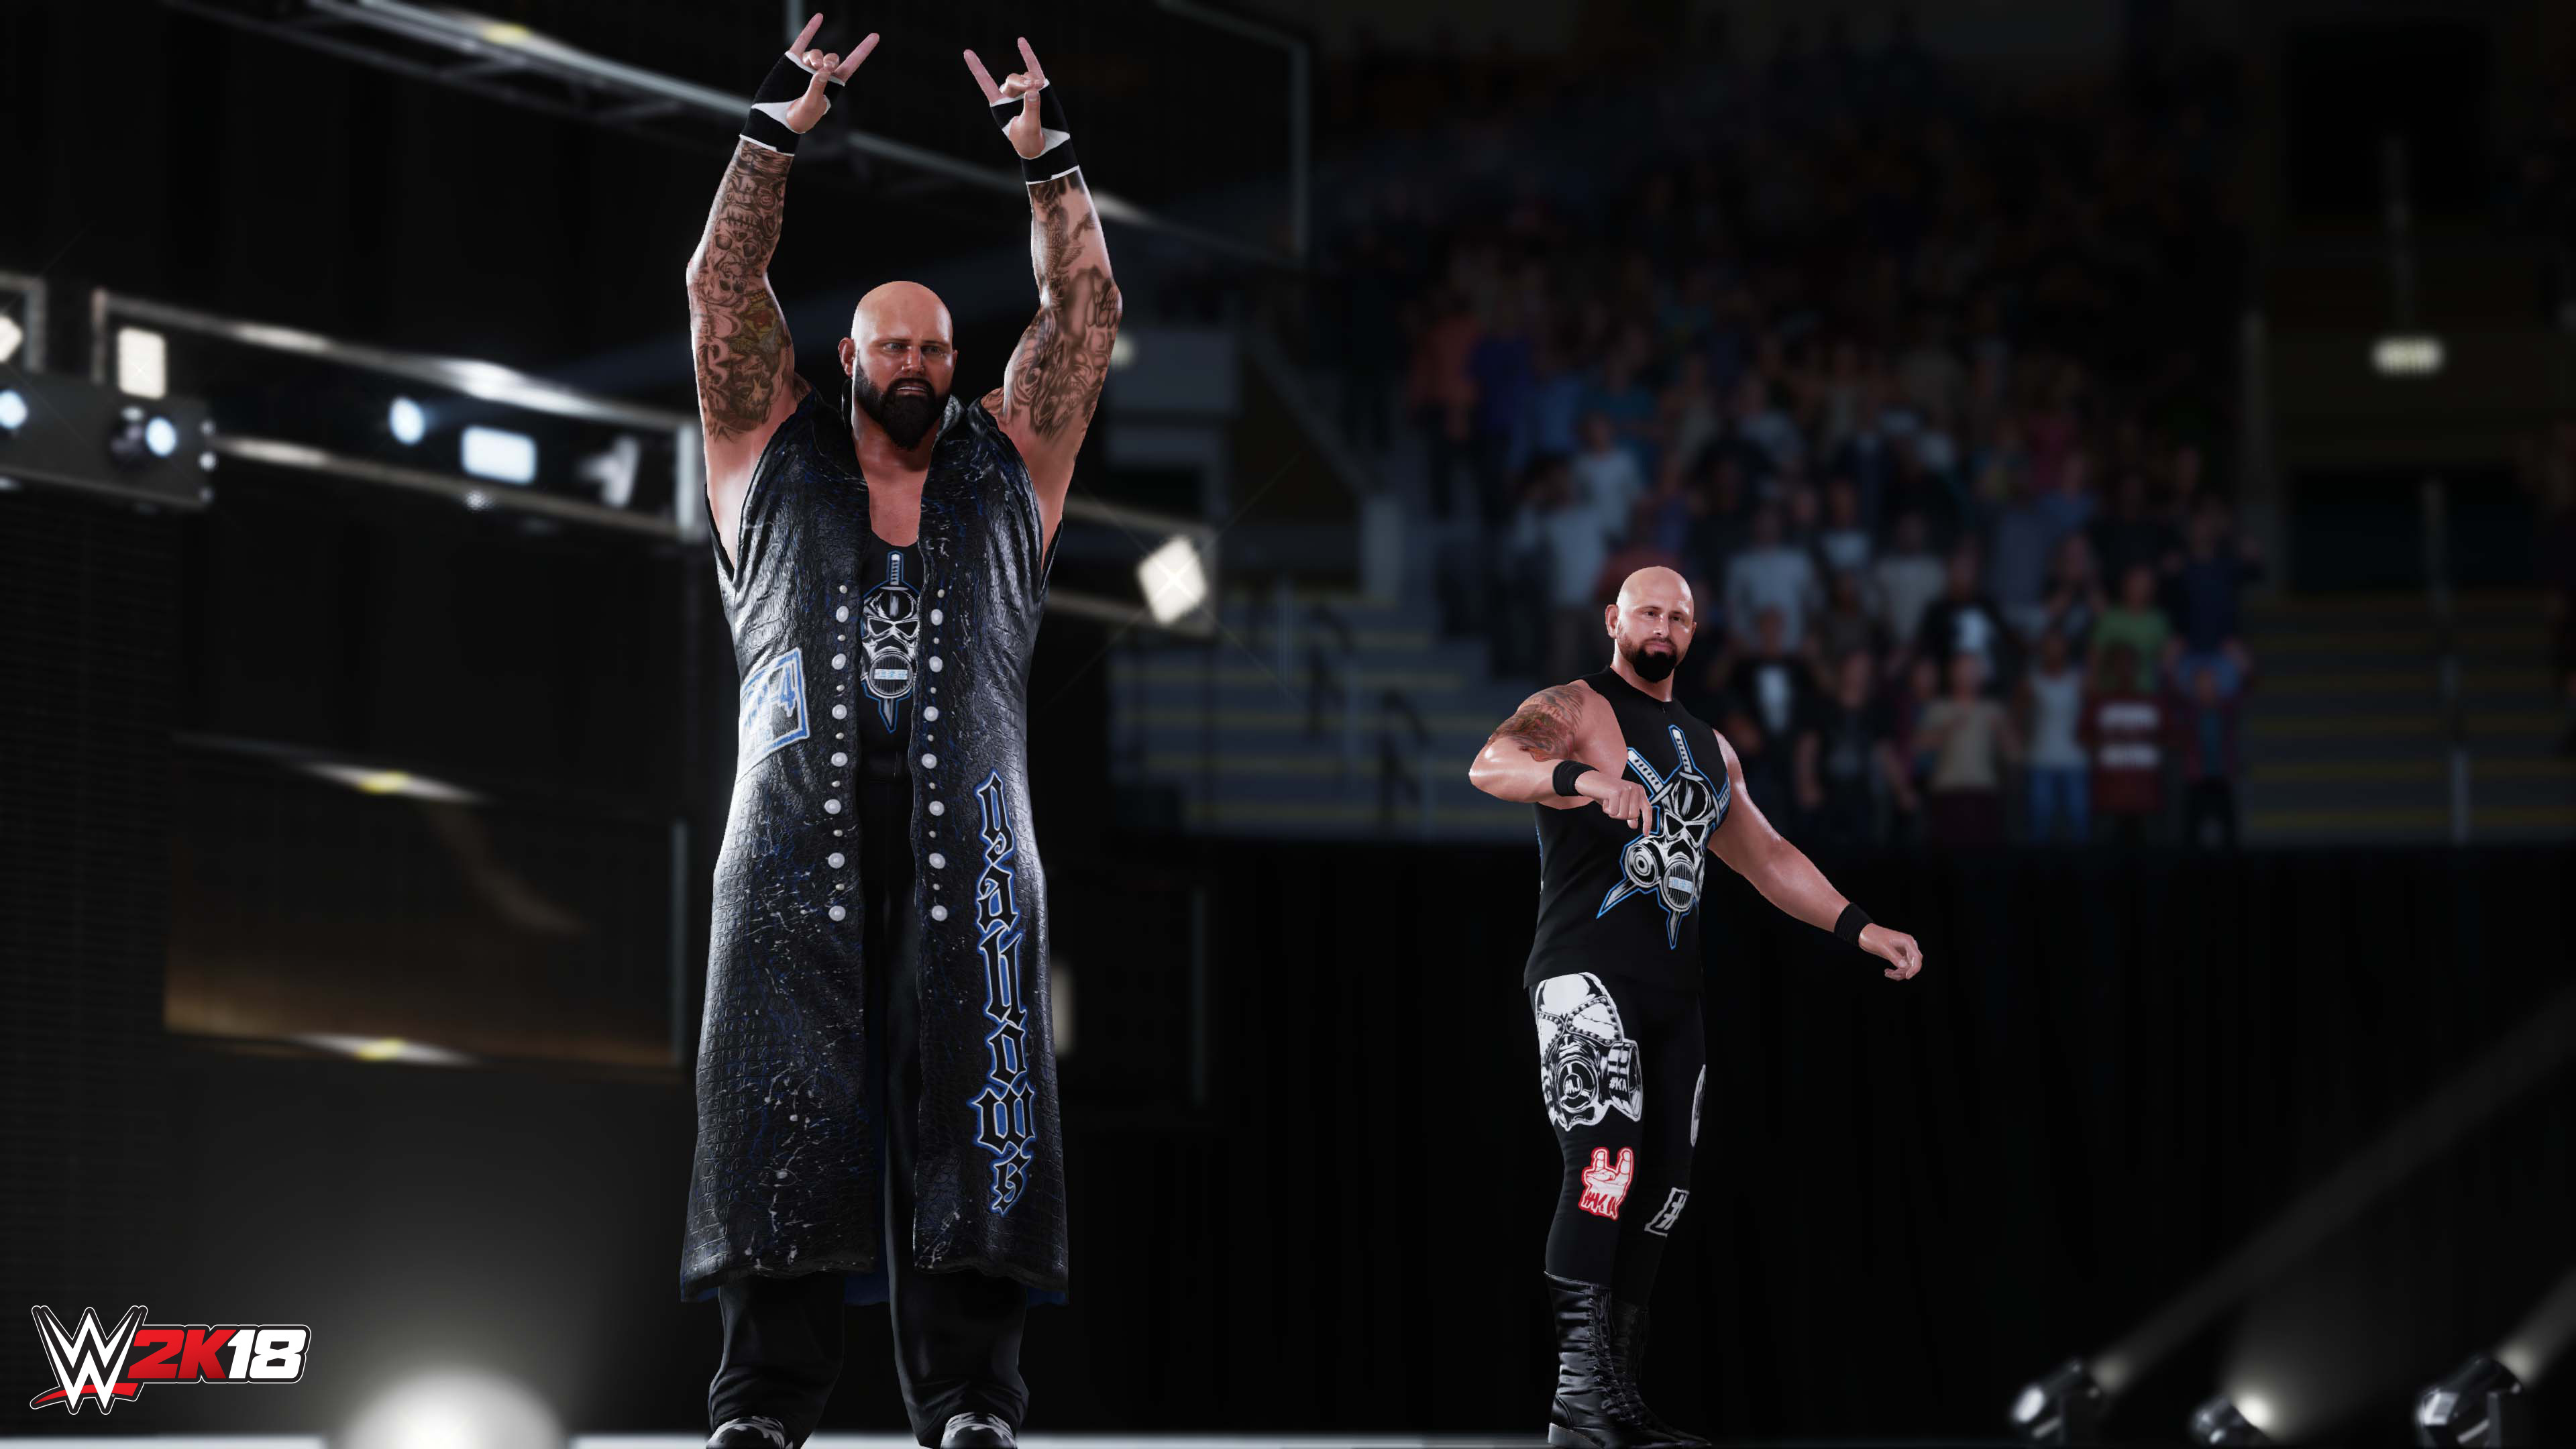 WWE 2K18 won't be plagued by paid micro-transactions